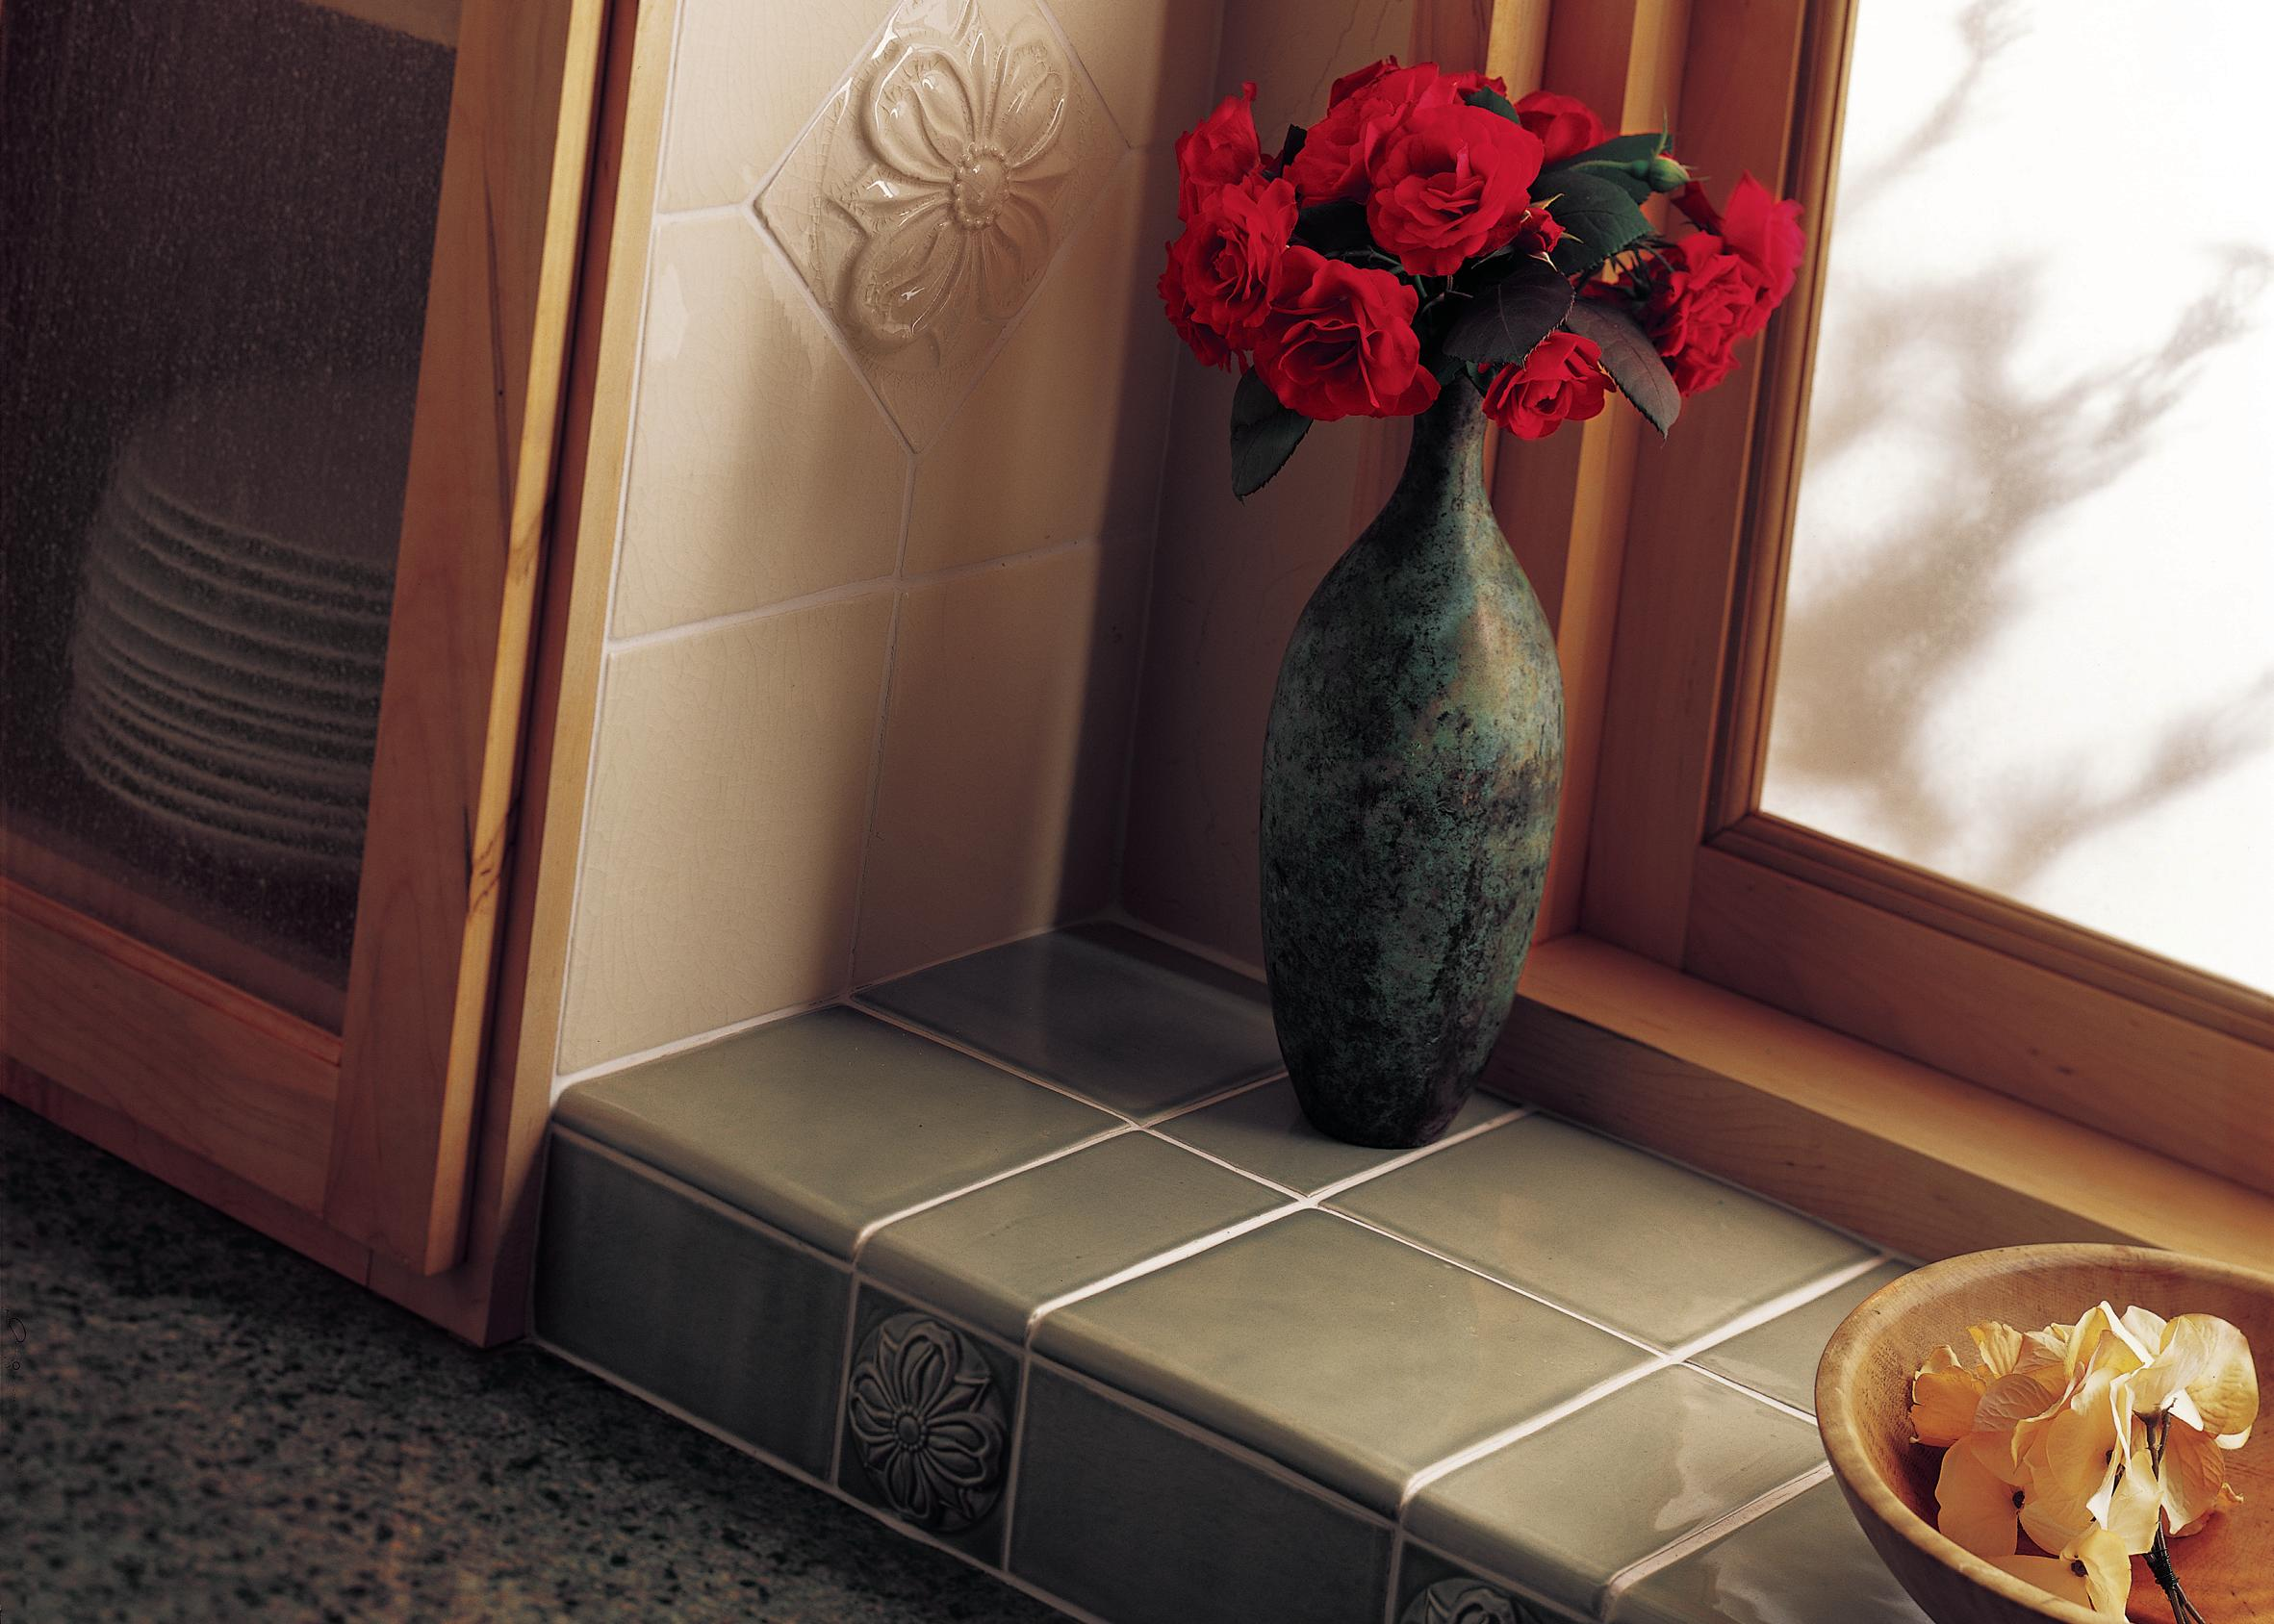 Floor Covering Brokers 1794 Barlow St Located At The Corner Of South  Airport And Barlow Road In Traverse City. Traverse City, MI  Tile Ceramic Contractors ...